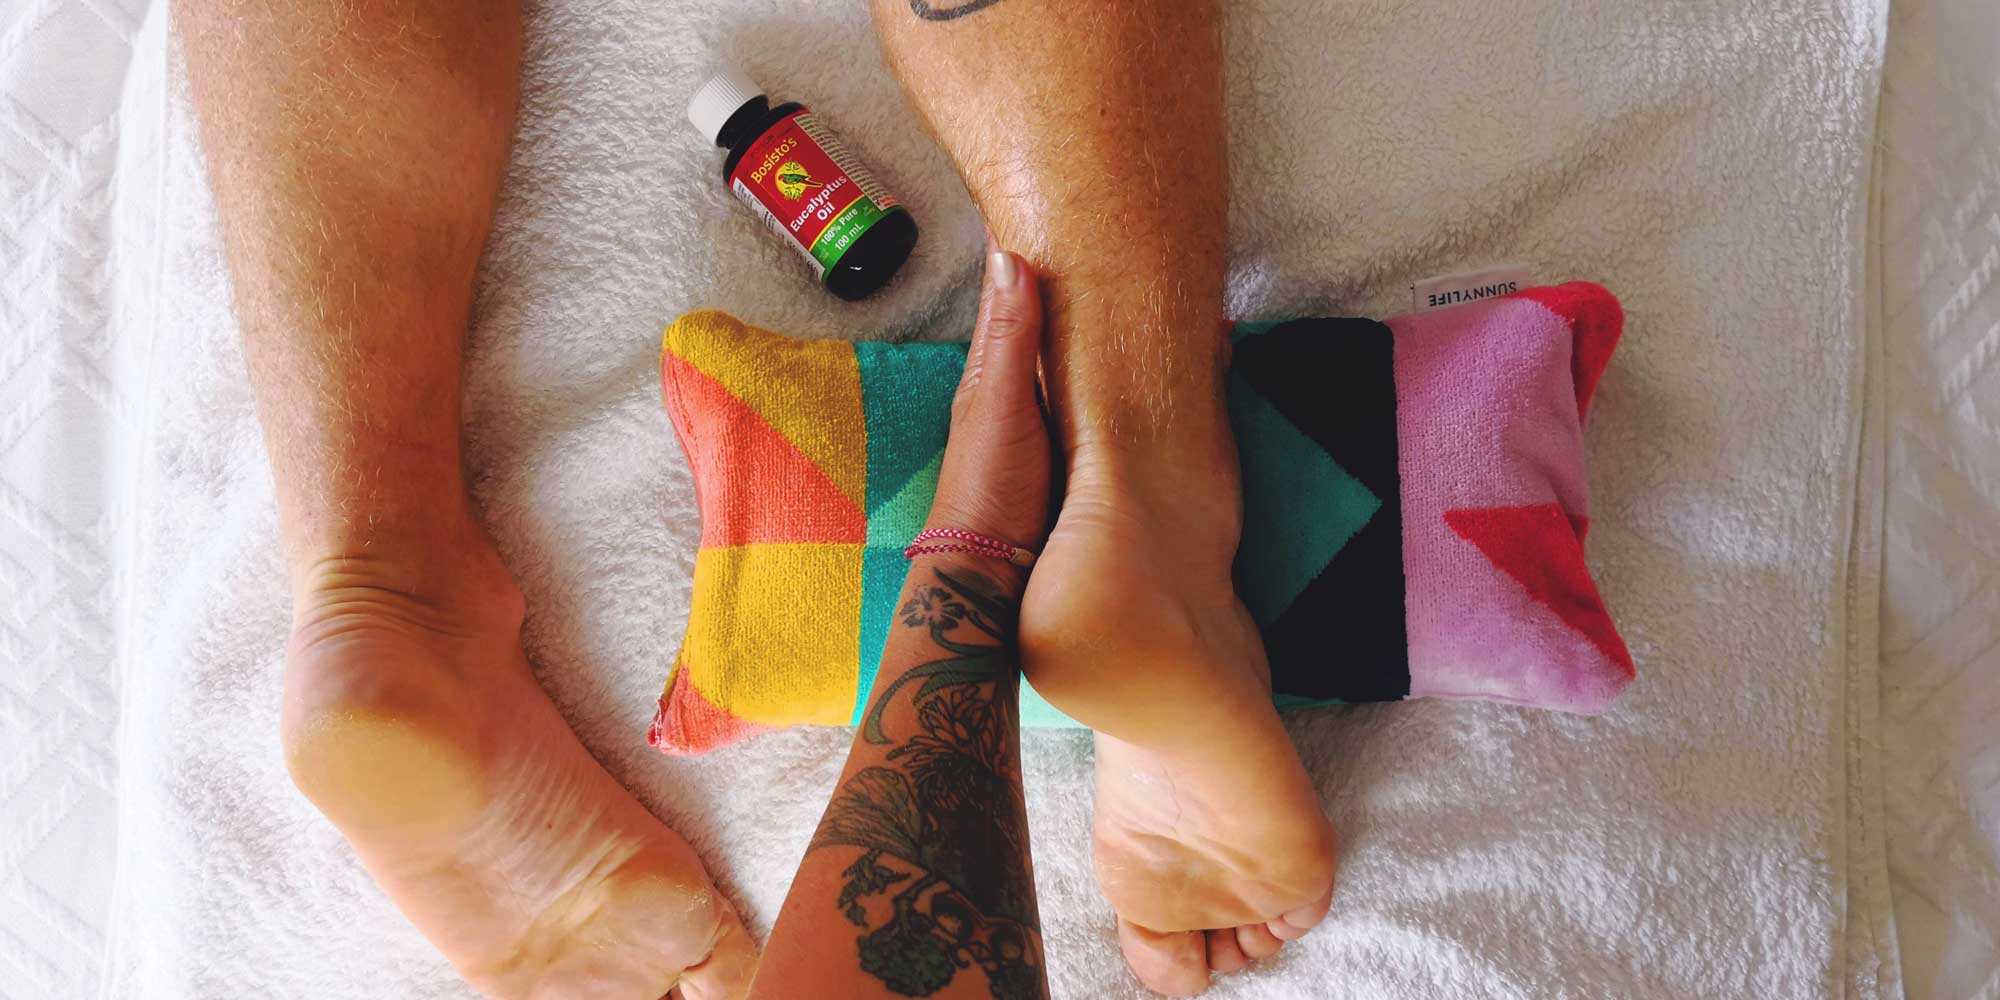 New Zealand's Top Travel Lifestyle Blog Beauty Review Bosisto's Essential Oils